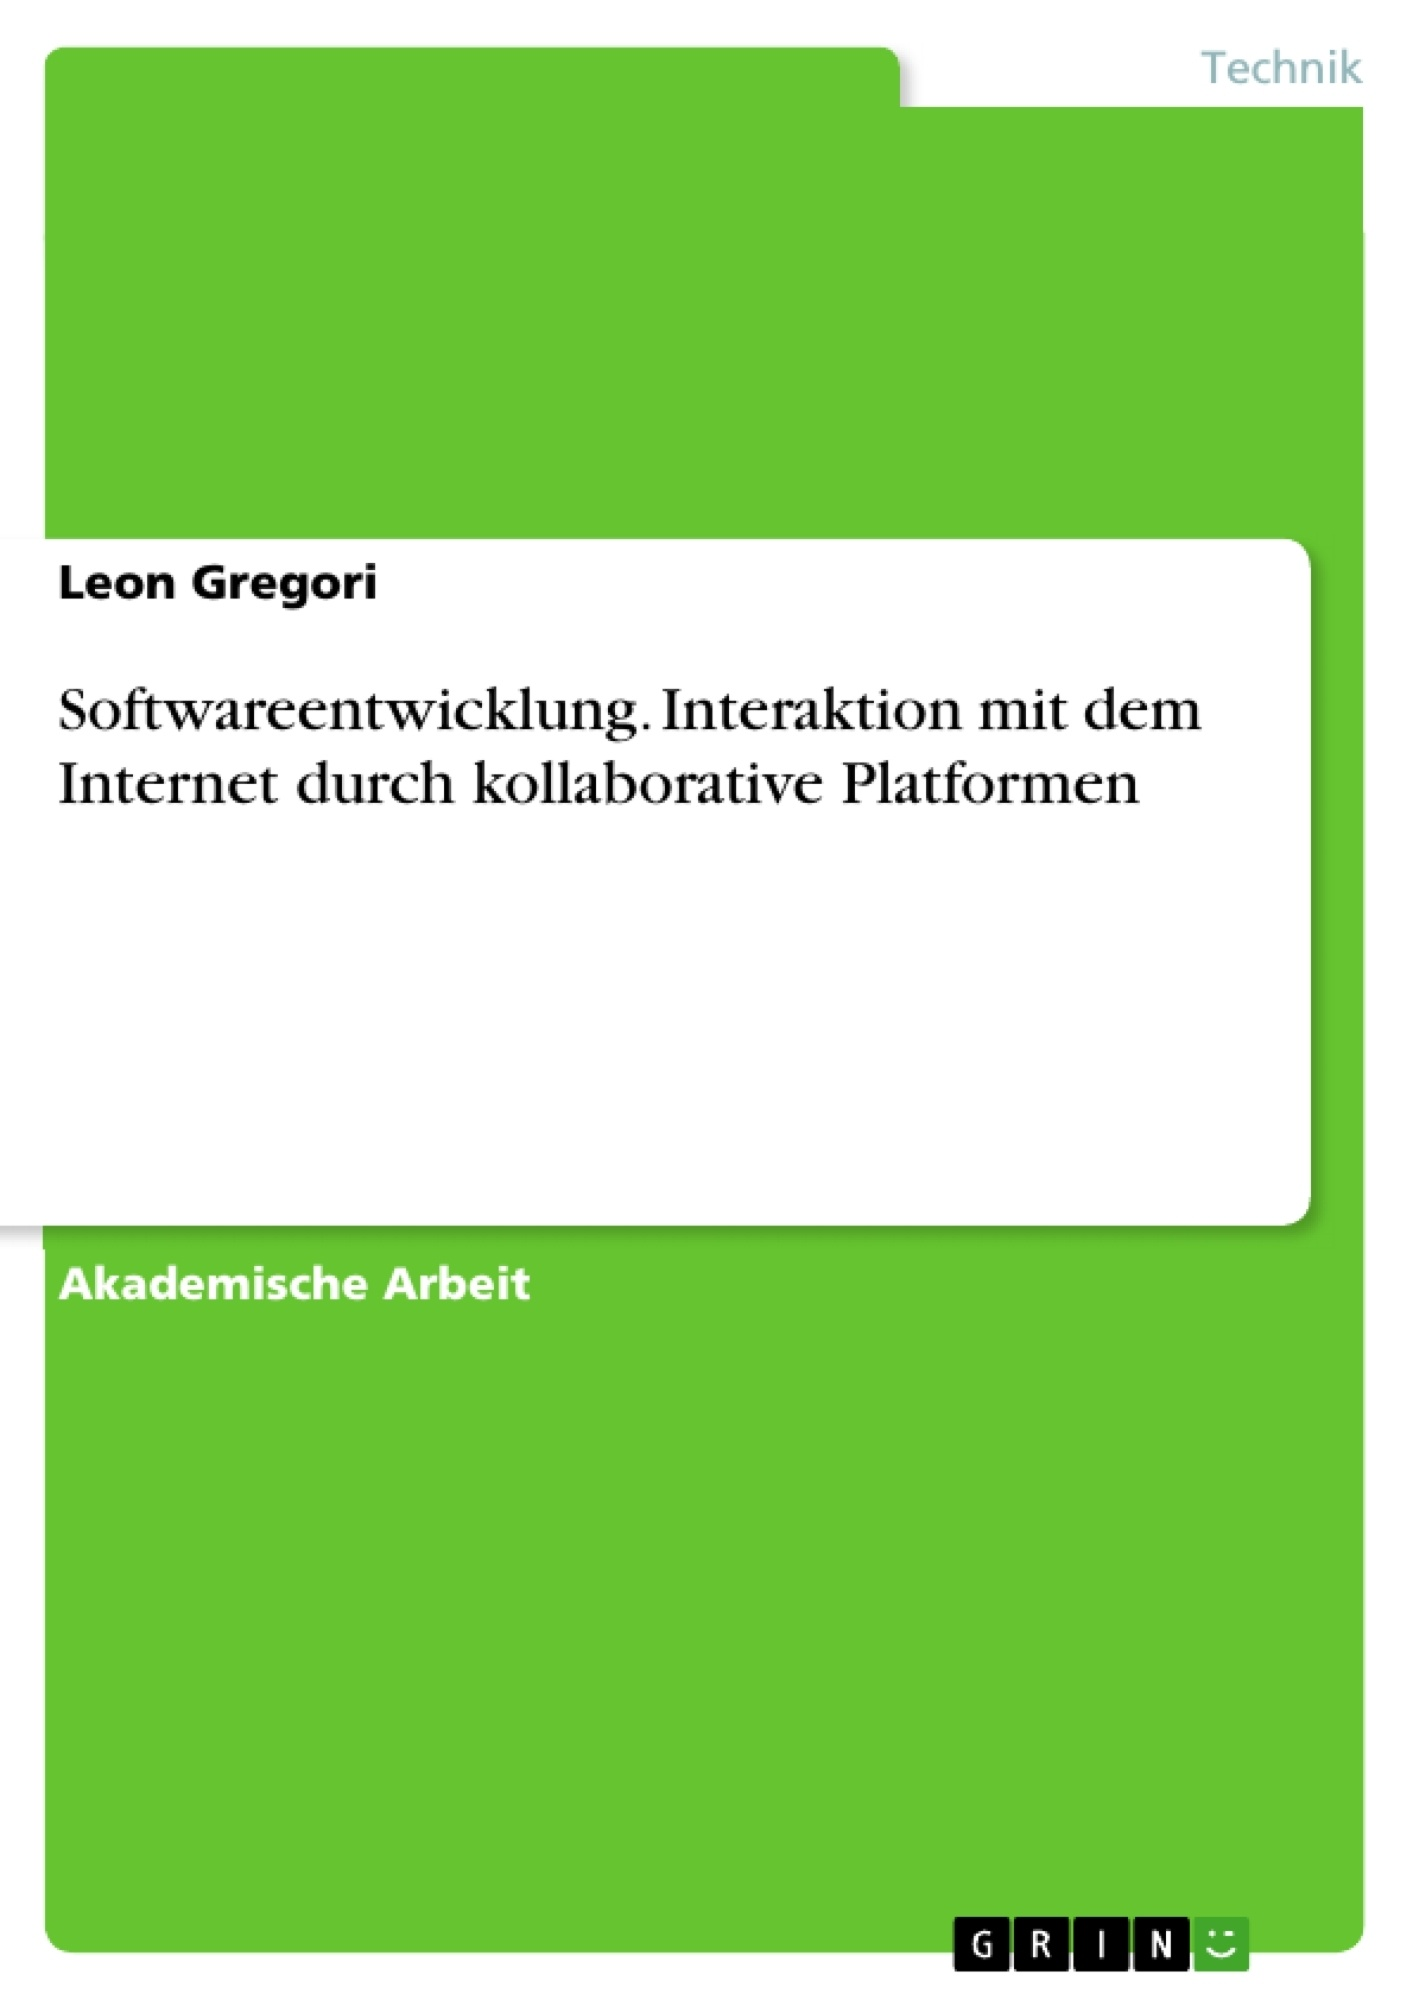 Titel: Softwareentwicklung. Interaktion mit dem Internet durch kollaborative Platformen